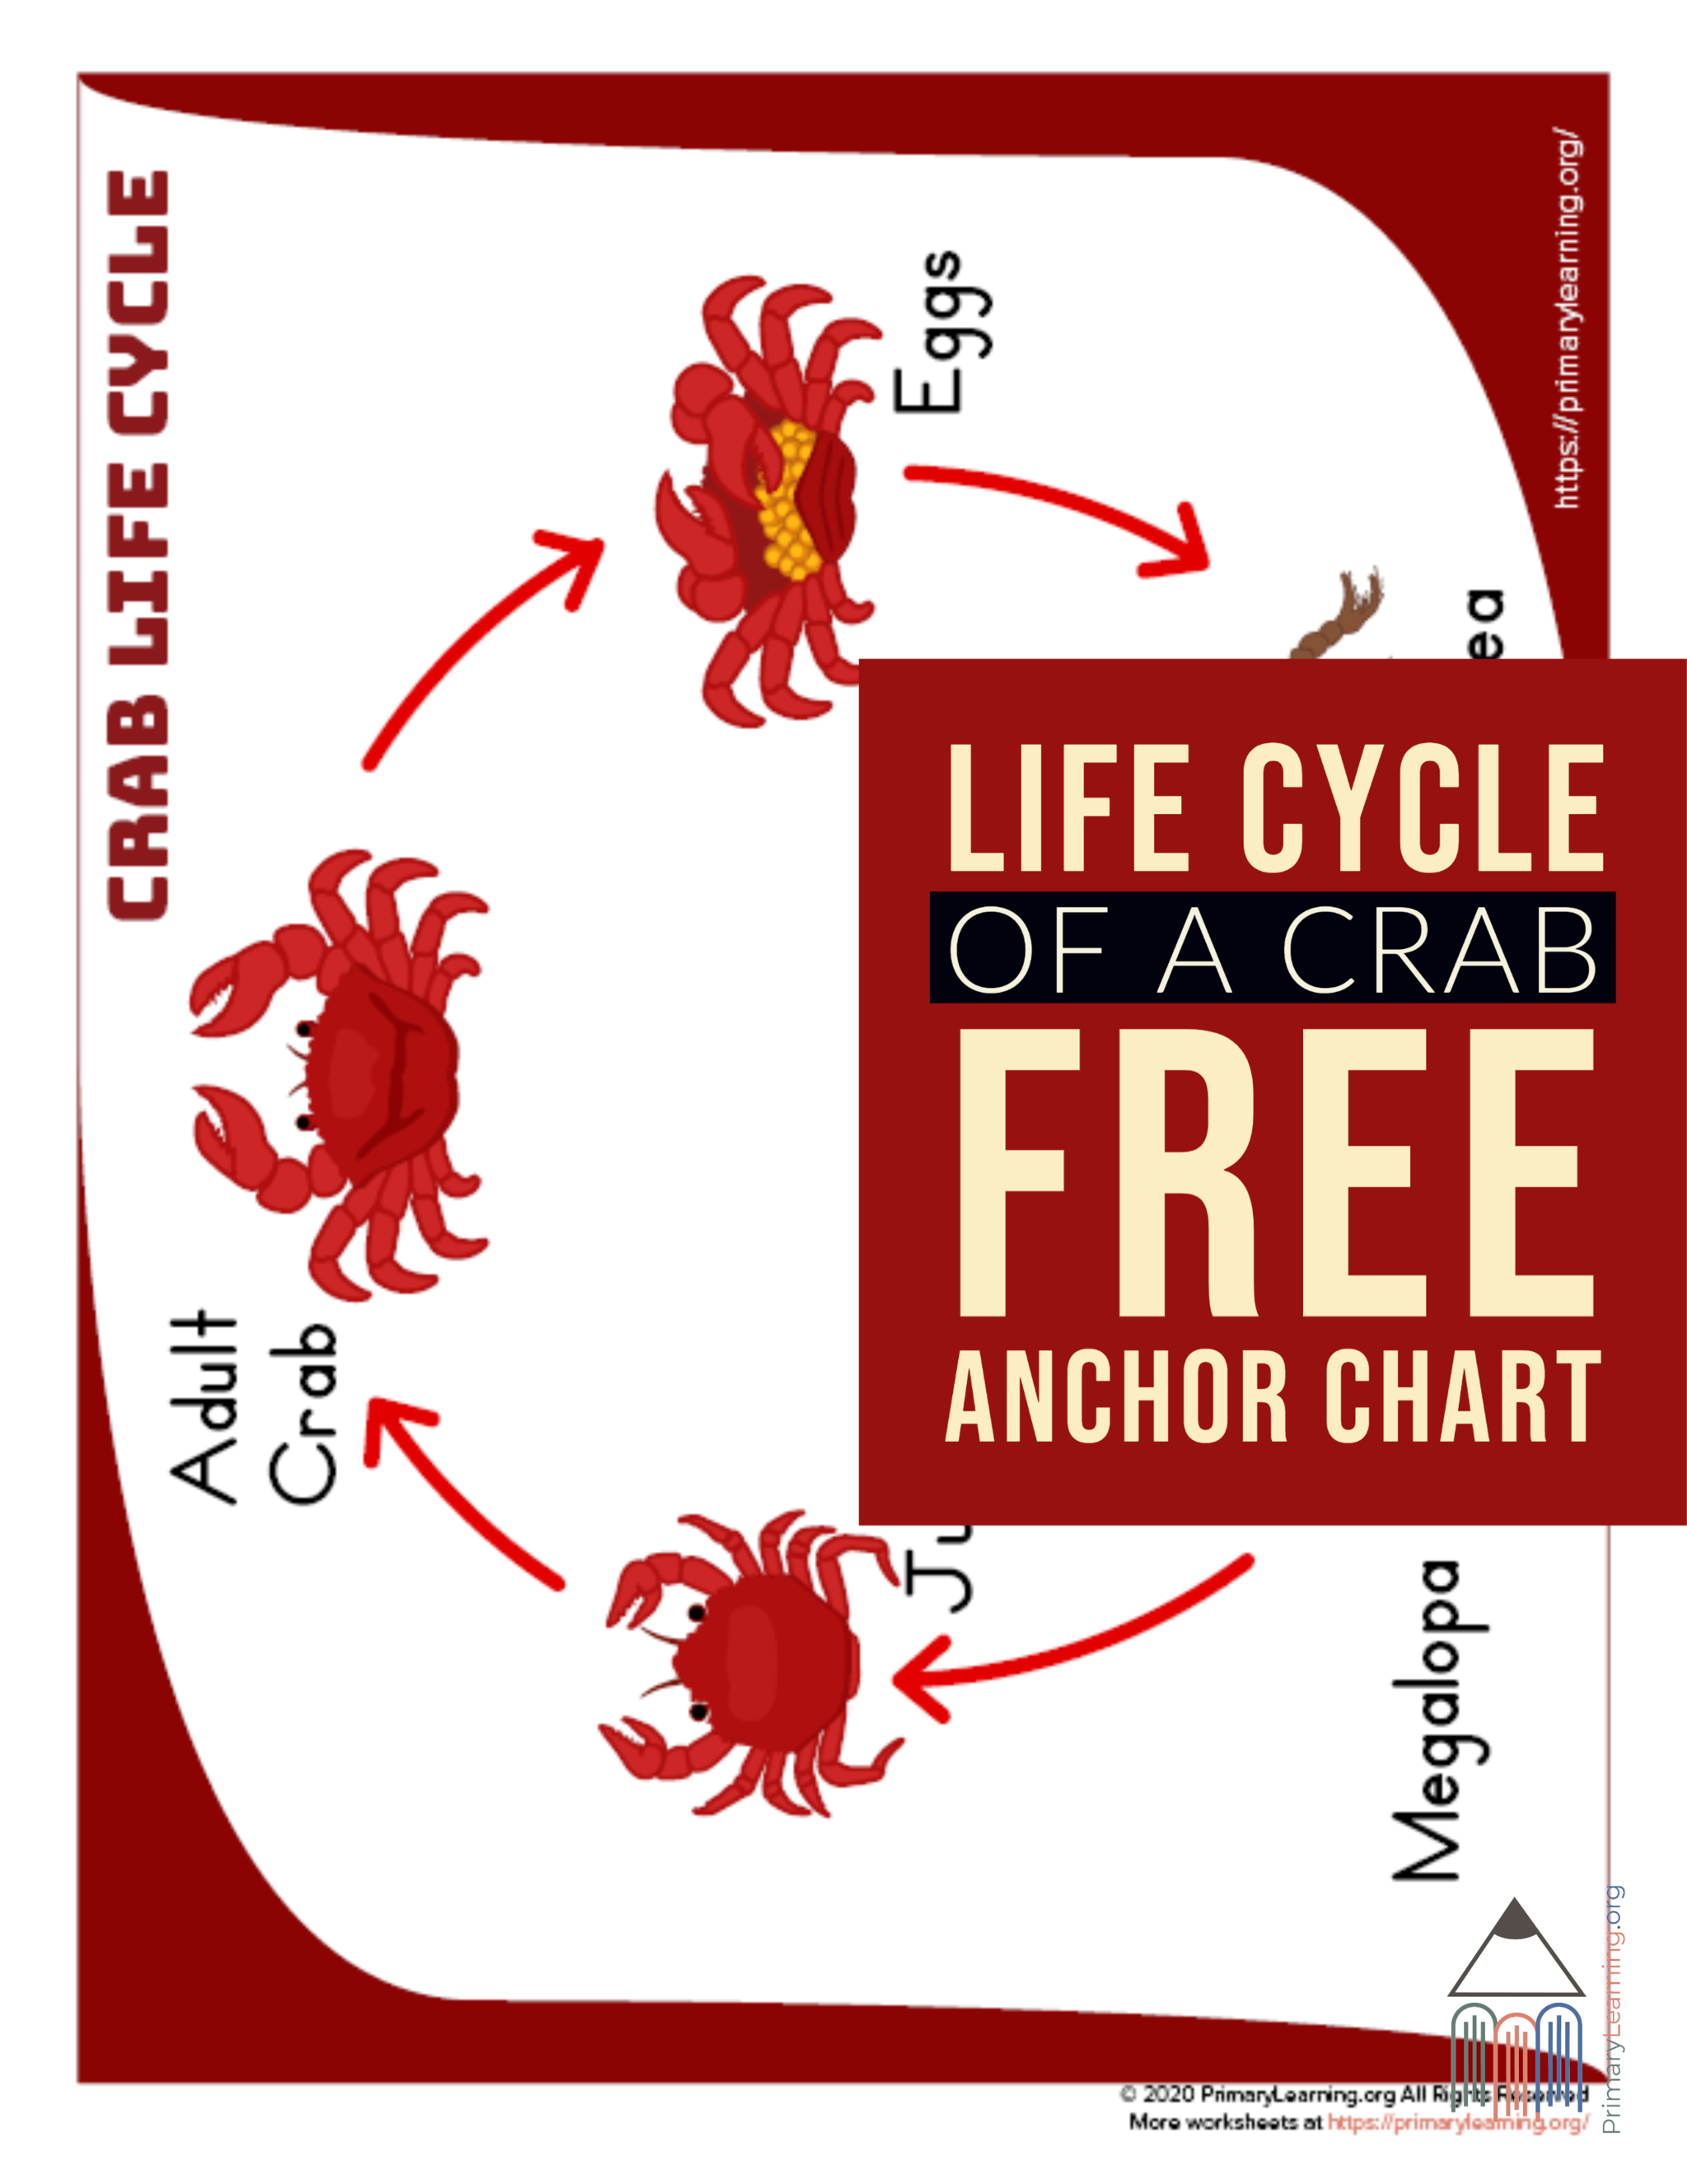 Crab Life Cycle Anchor Chart In